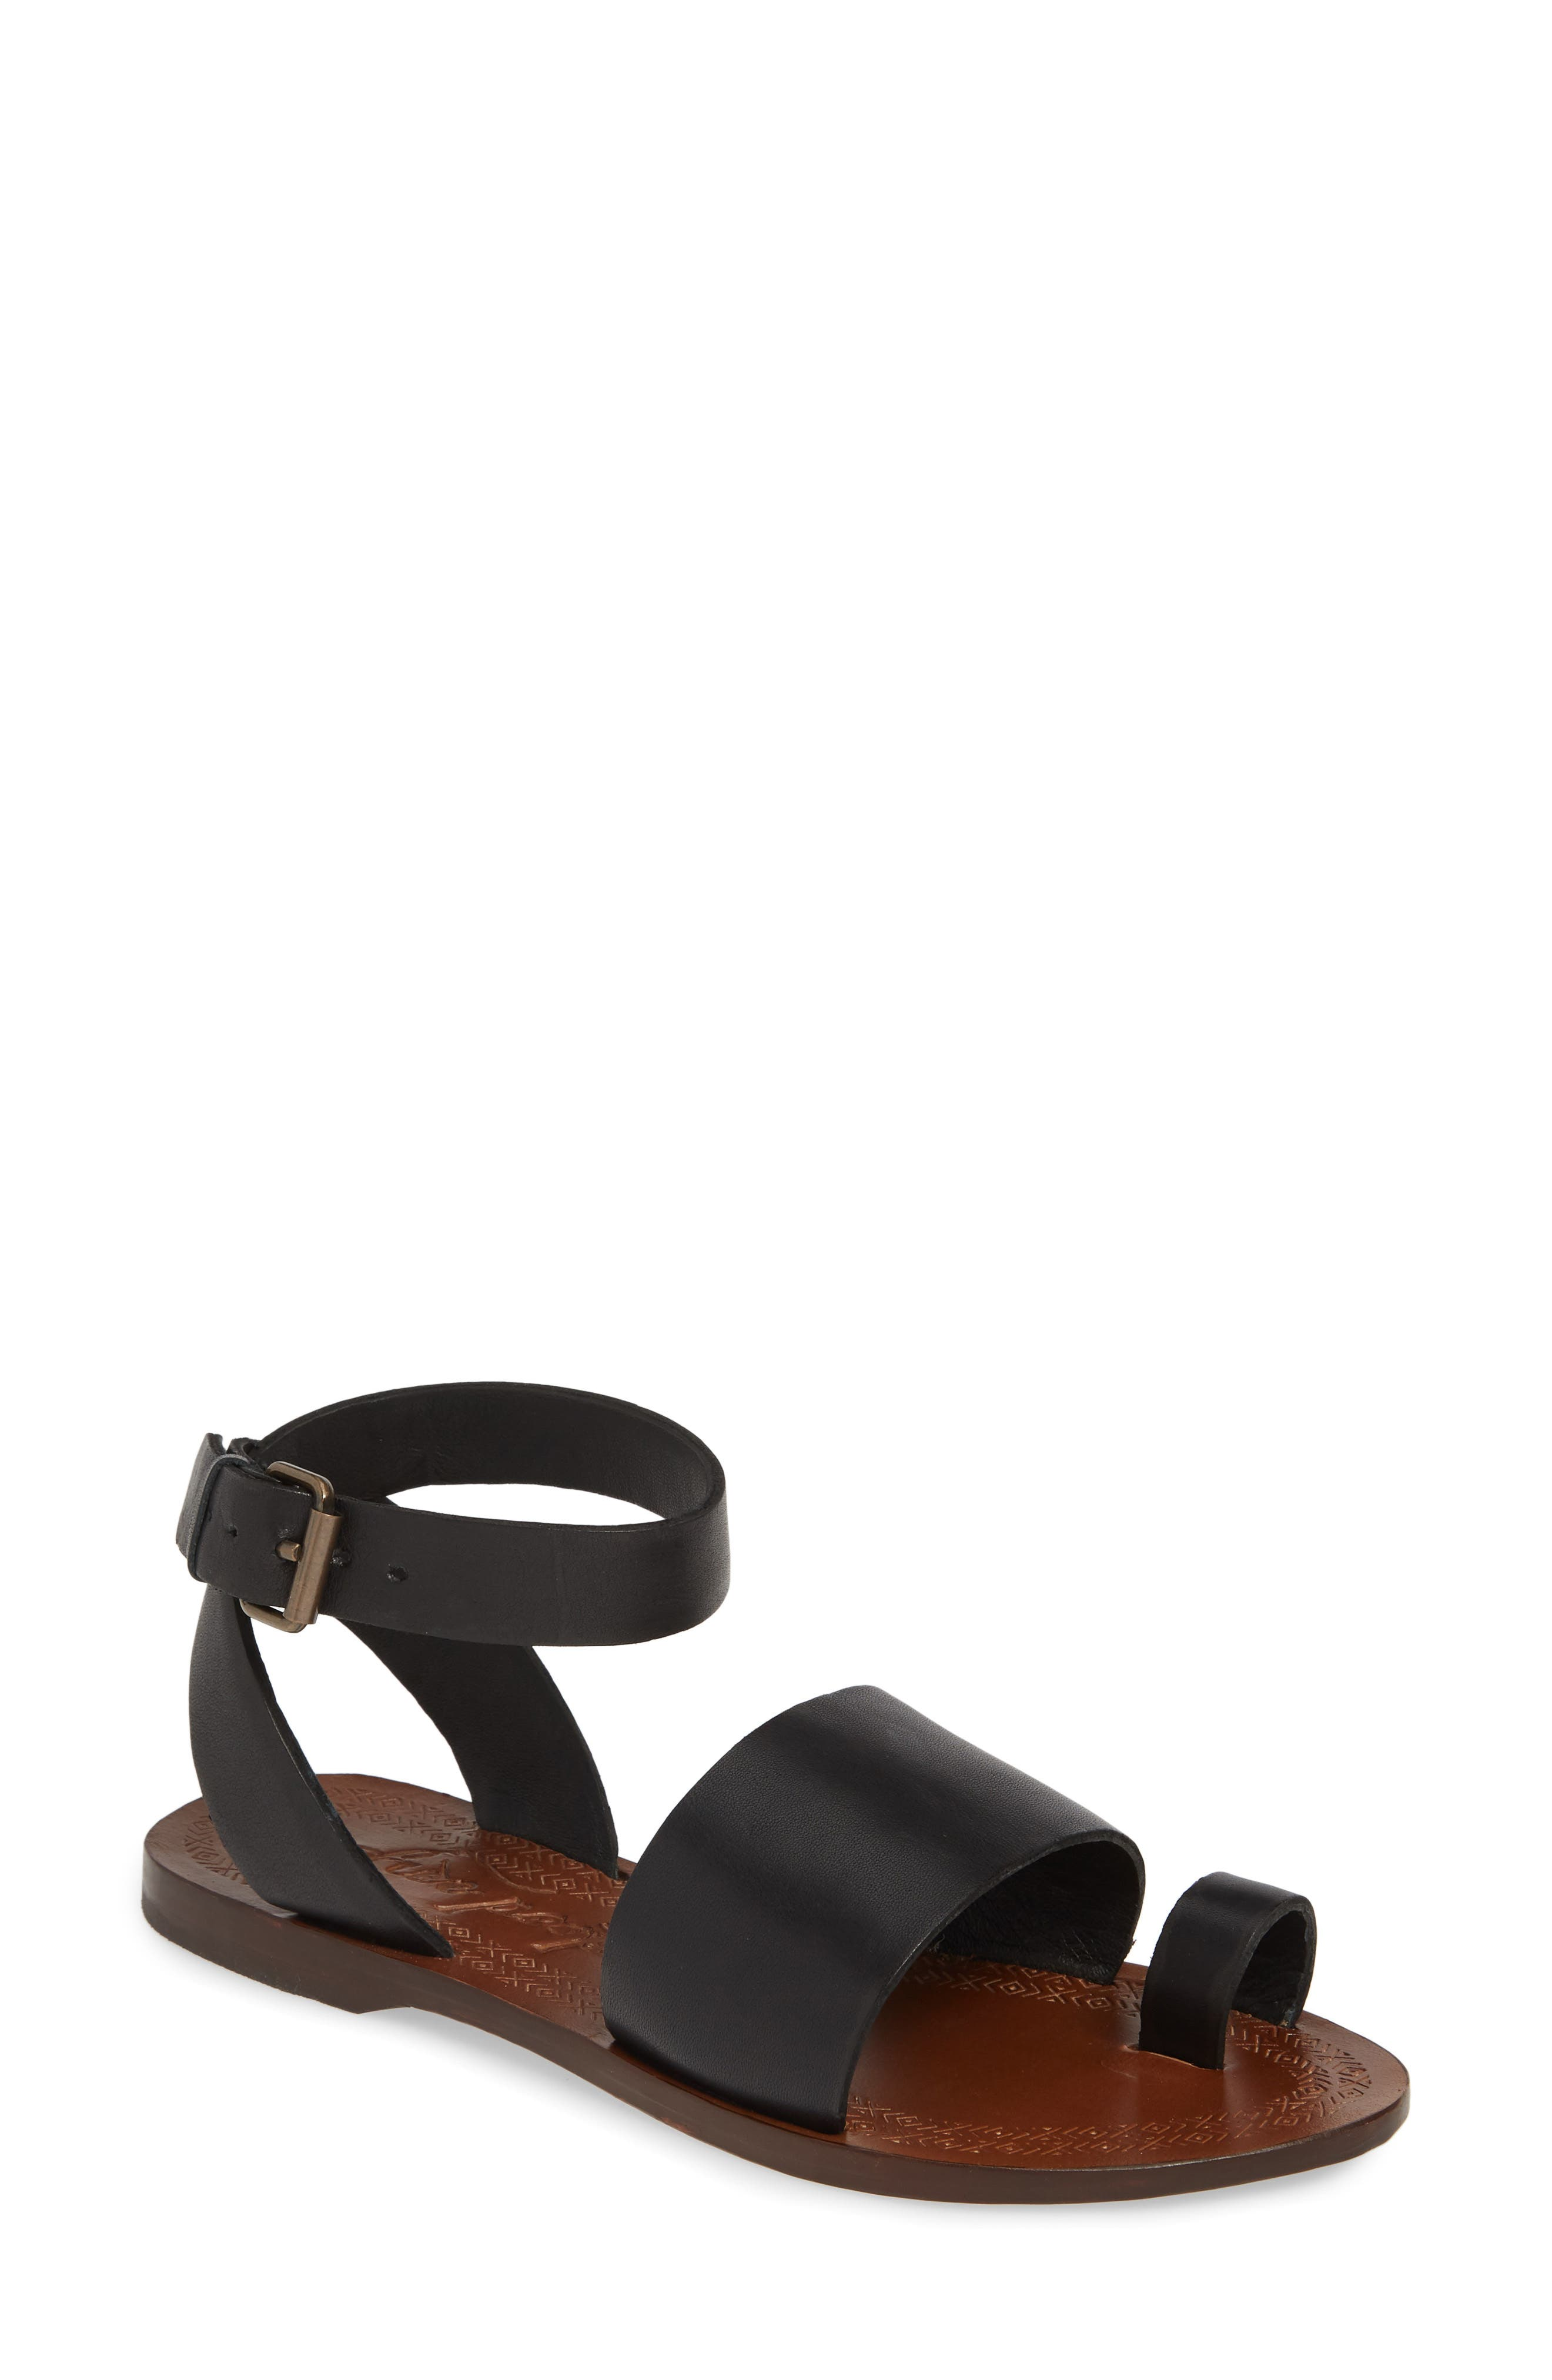 FREE PEOPLE, Torrence Ankle Wrap Sandal, Main thumbnail 1, color, OXFORD/ SANG